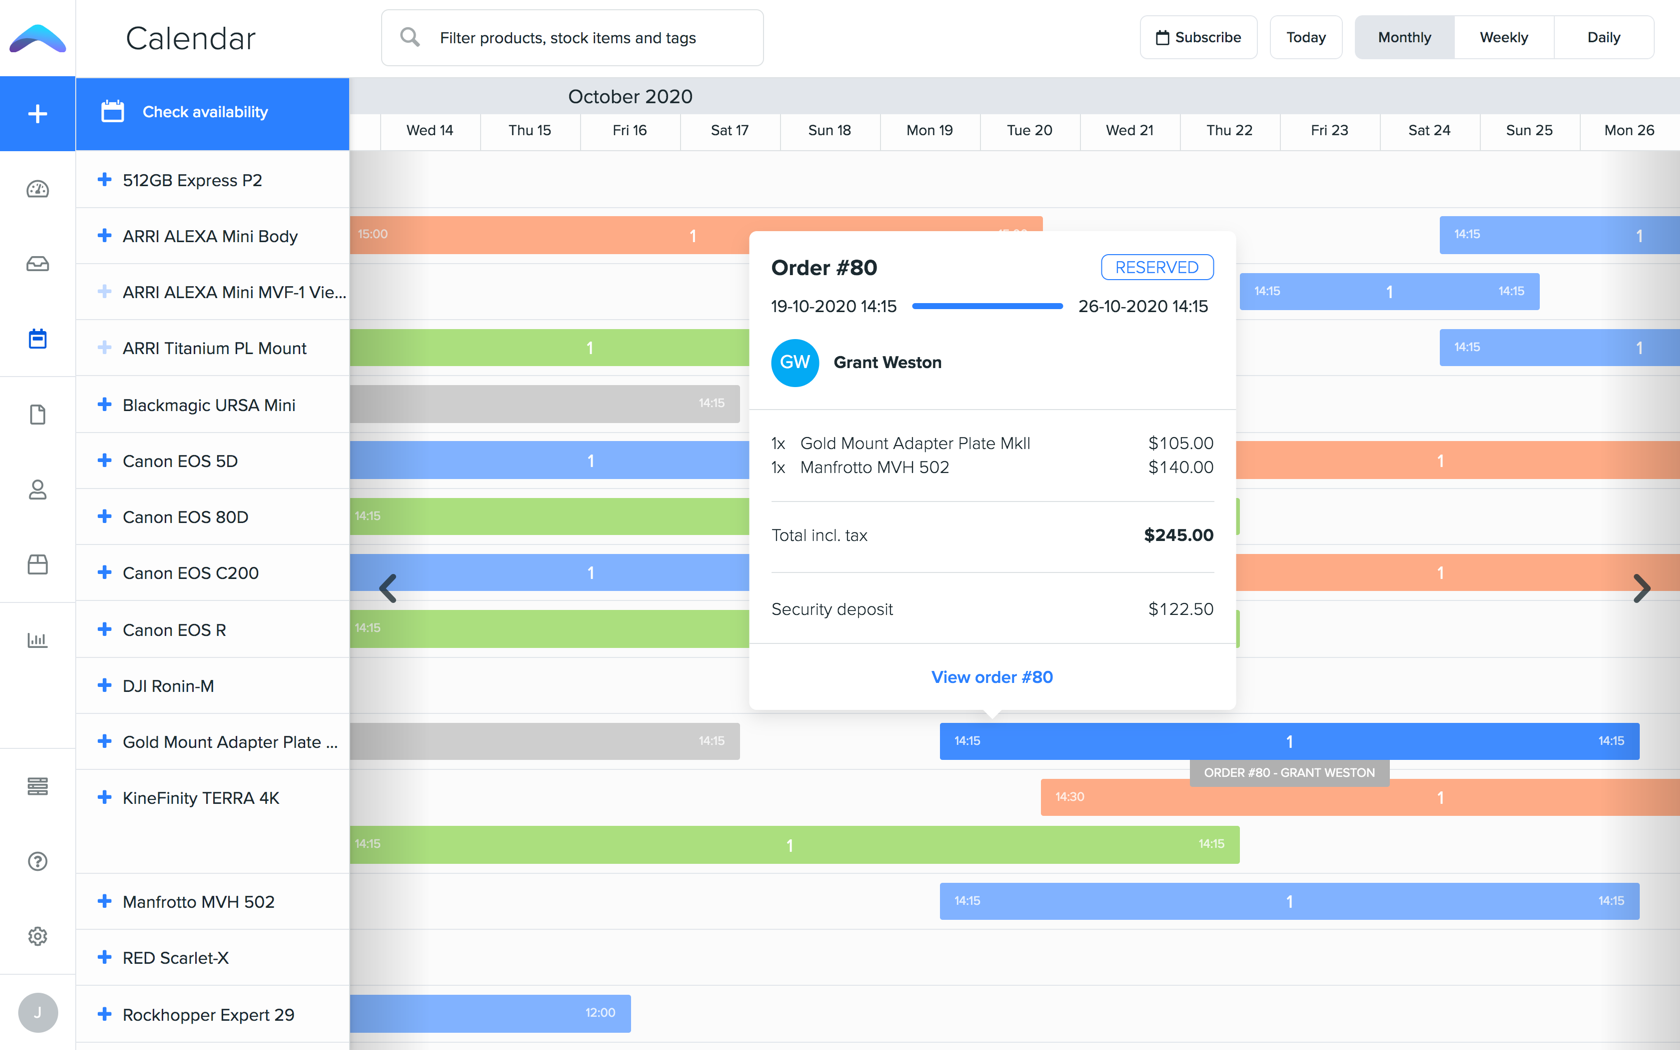 Use the calendar to zoom in on specific items and check availability for any date range.